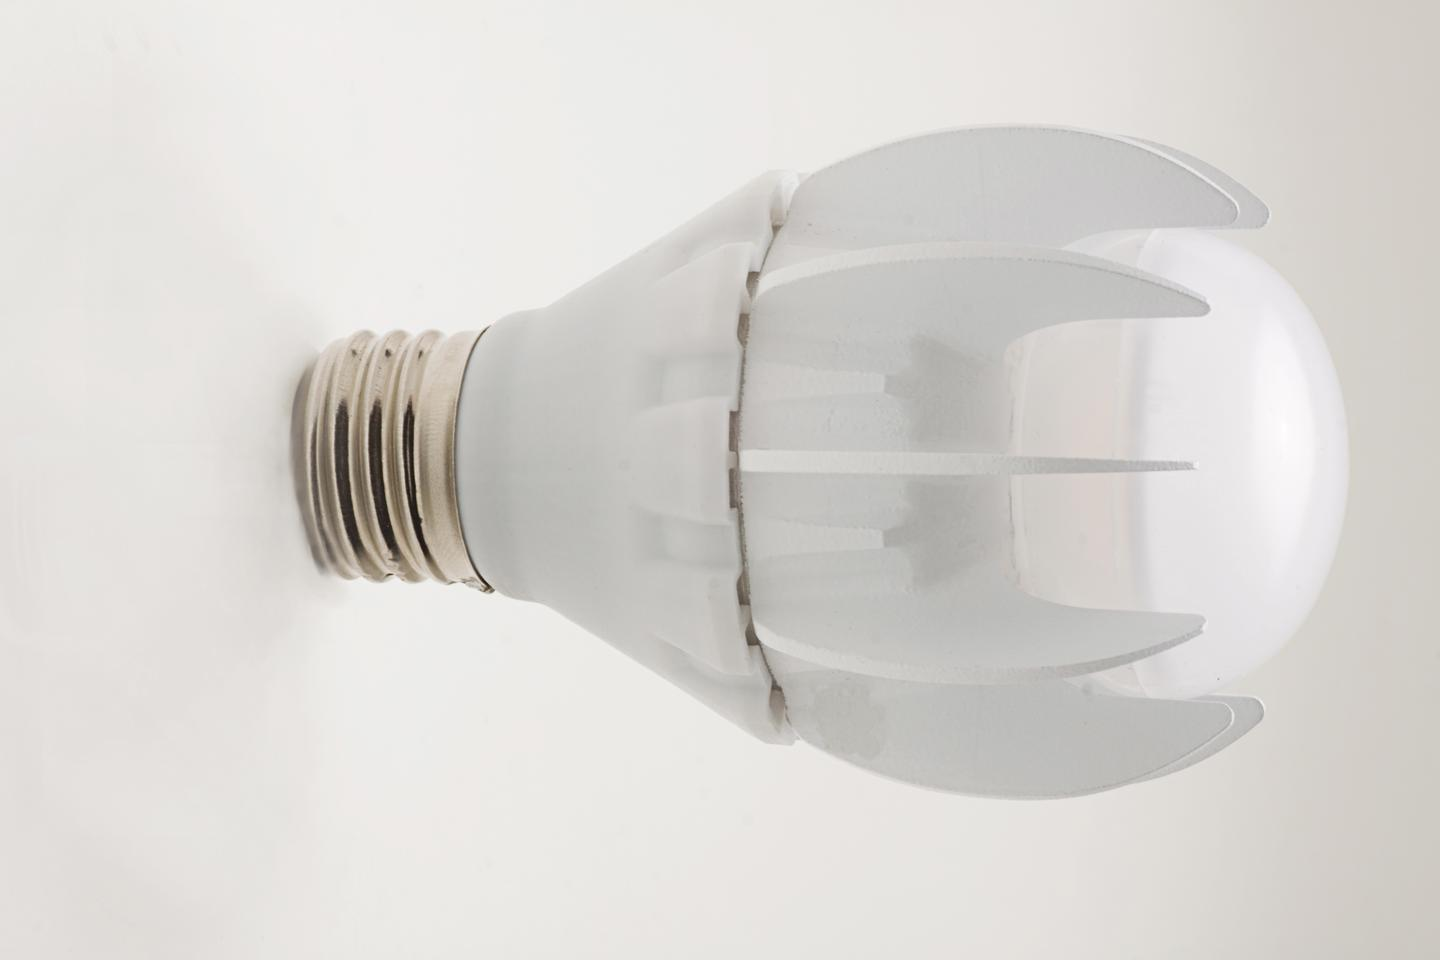 GE has announced the addition of a 100 W incandescent equivalent to its range of LED replacement light bulbs